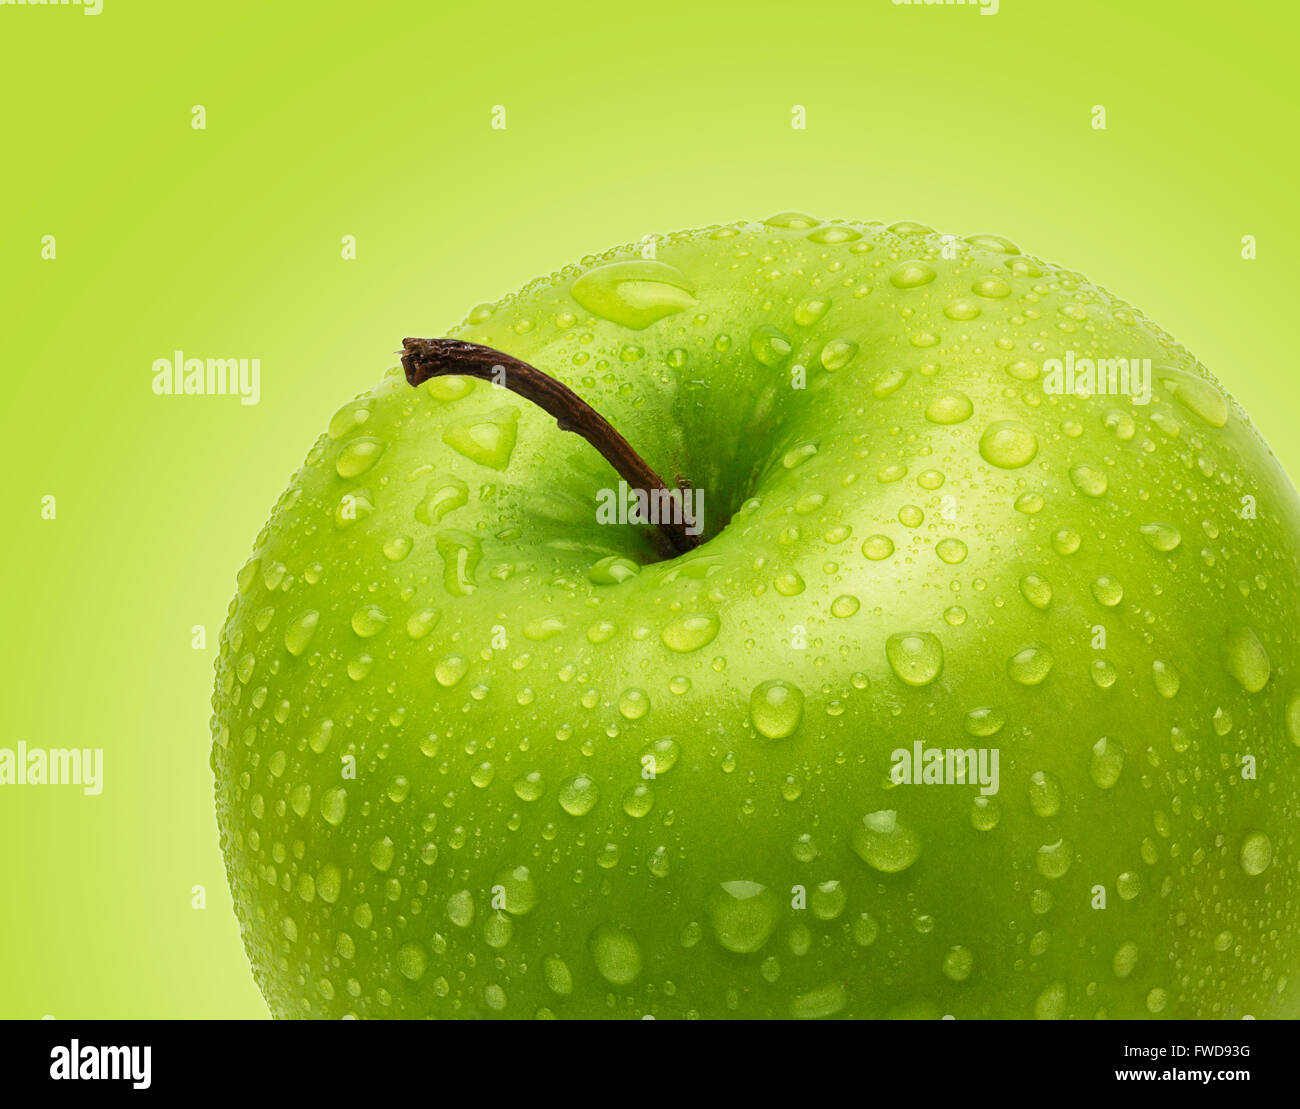 Perfect Fresh Green Apple Isolated on Green Background in Full Depth of Field with Clipping Path. - Stock Image